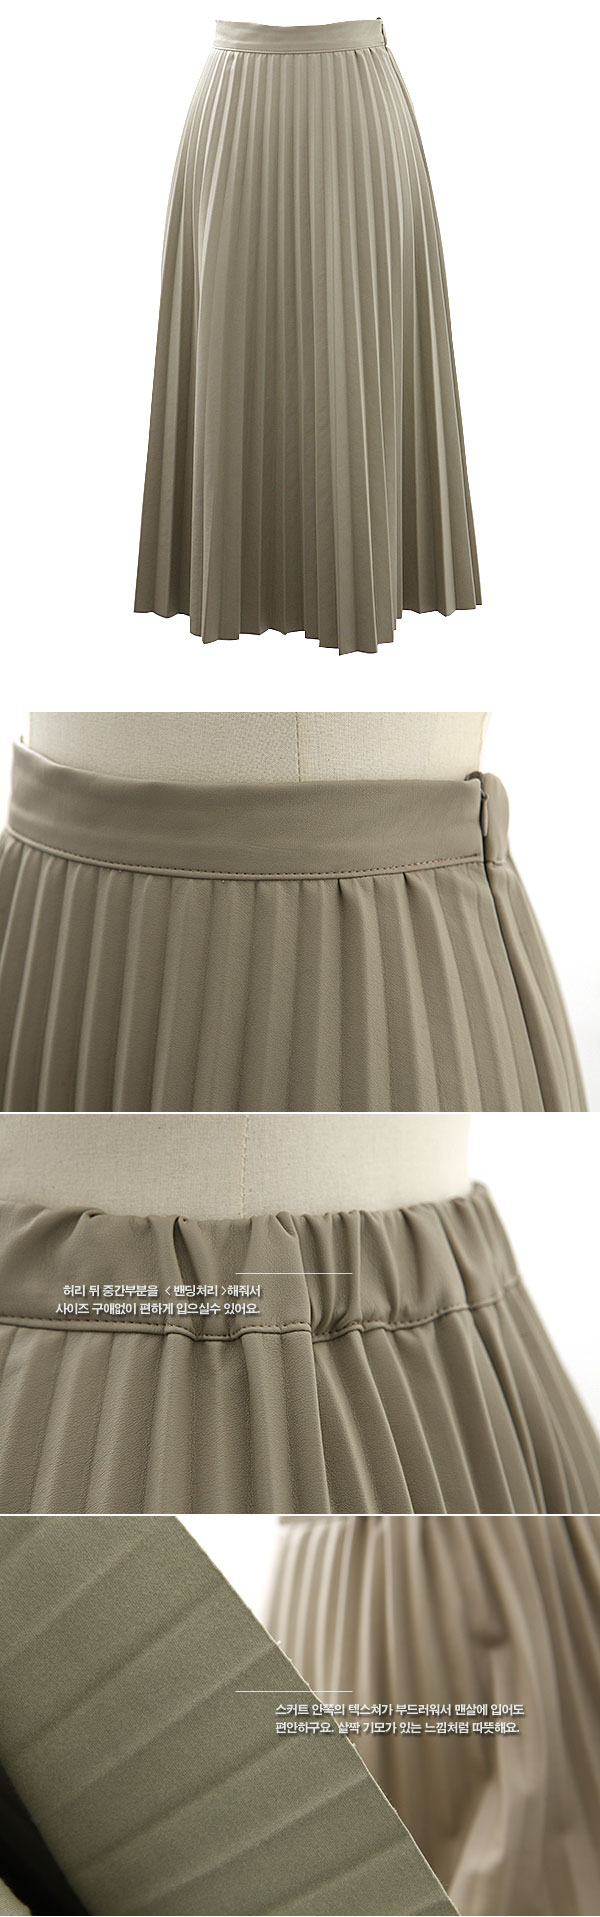 LEBEI pleats skirt